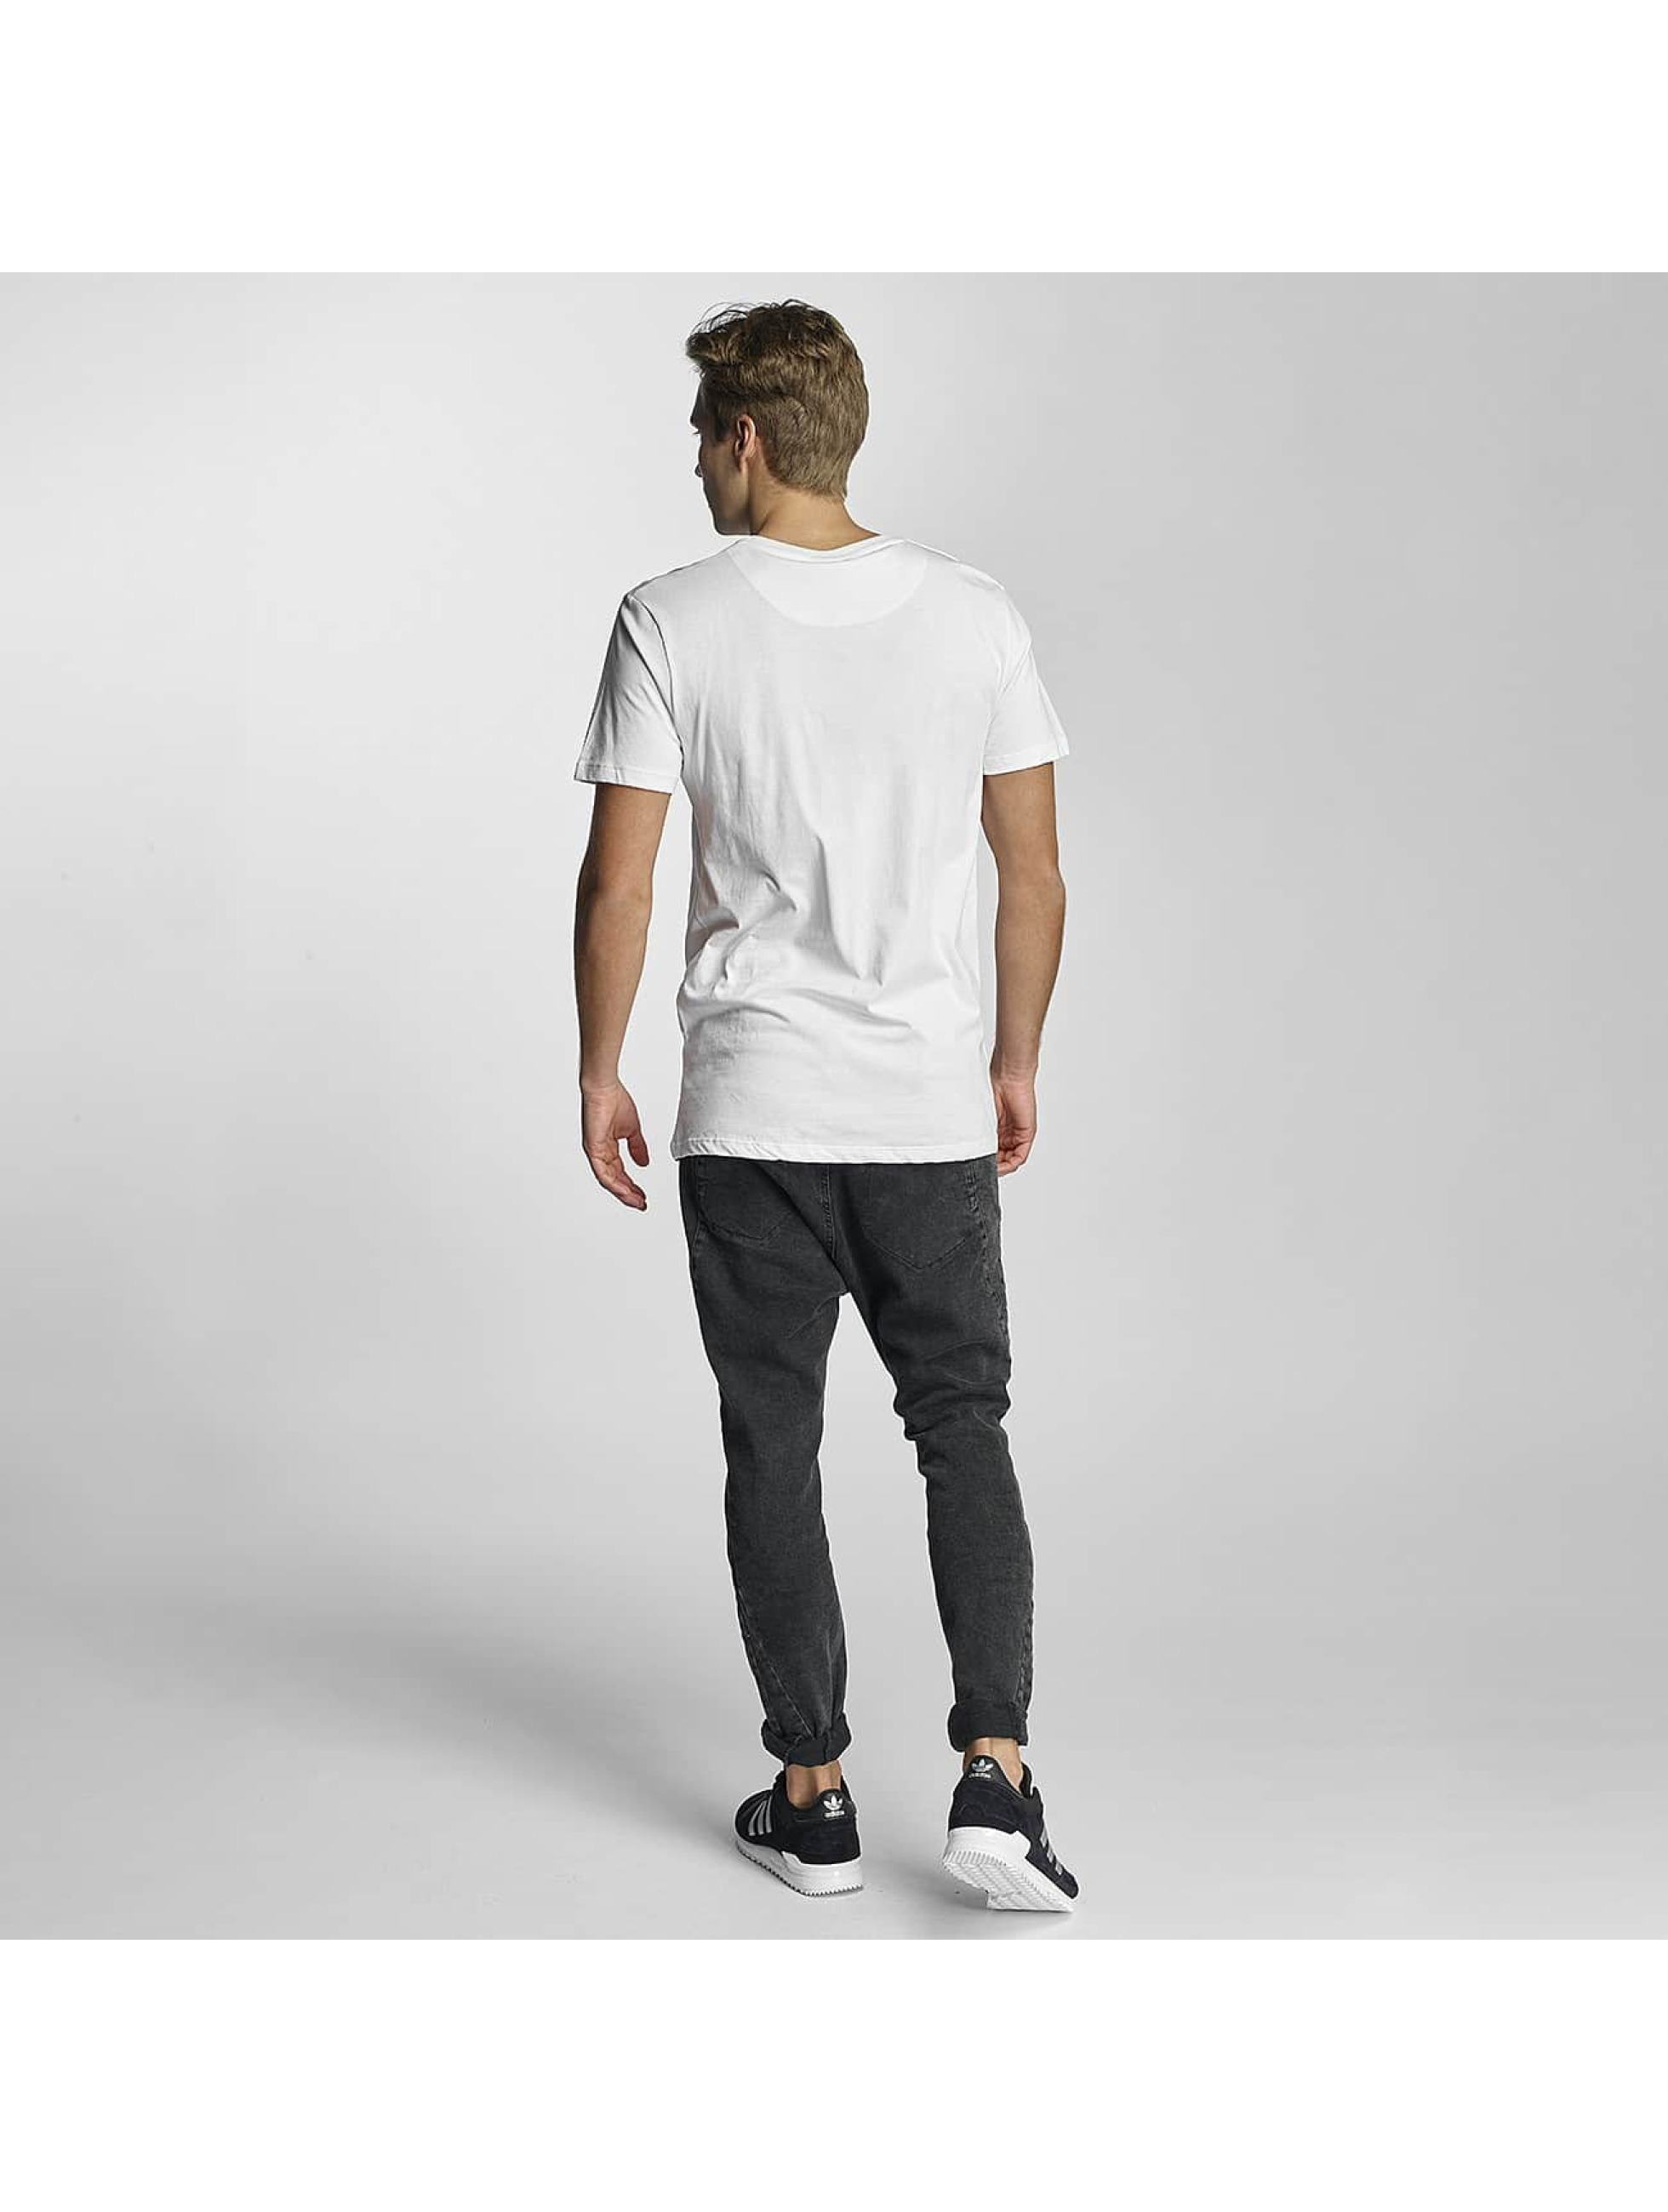 HYPE T-Shirt Haus white